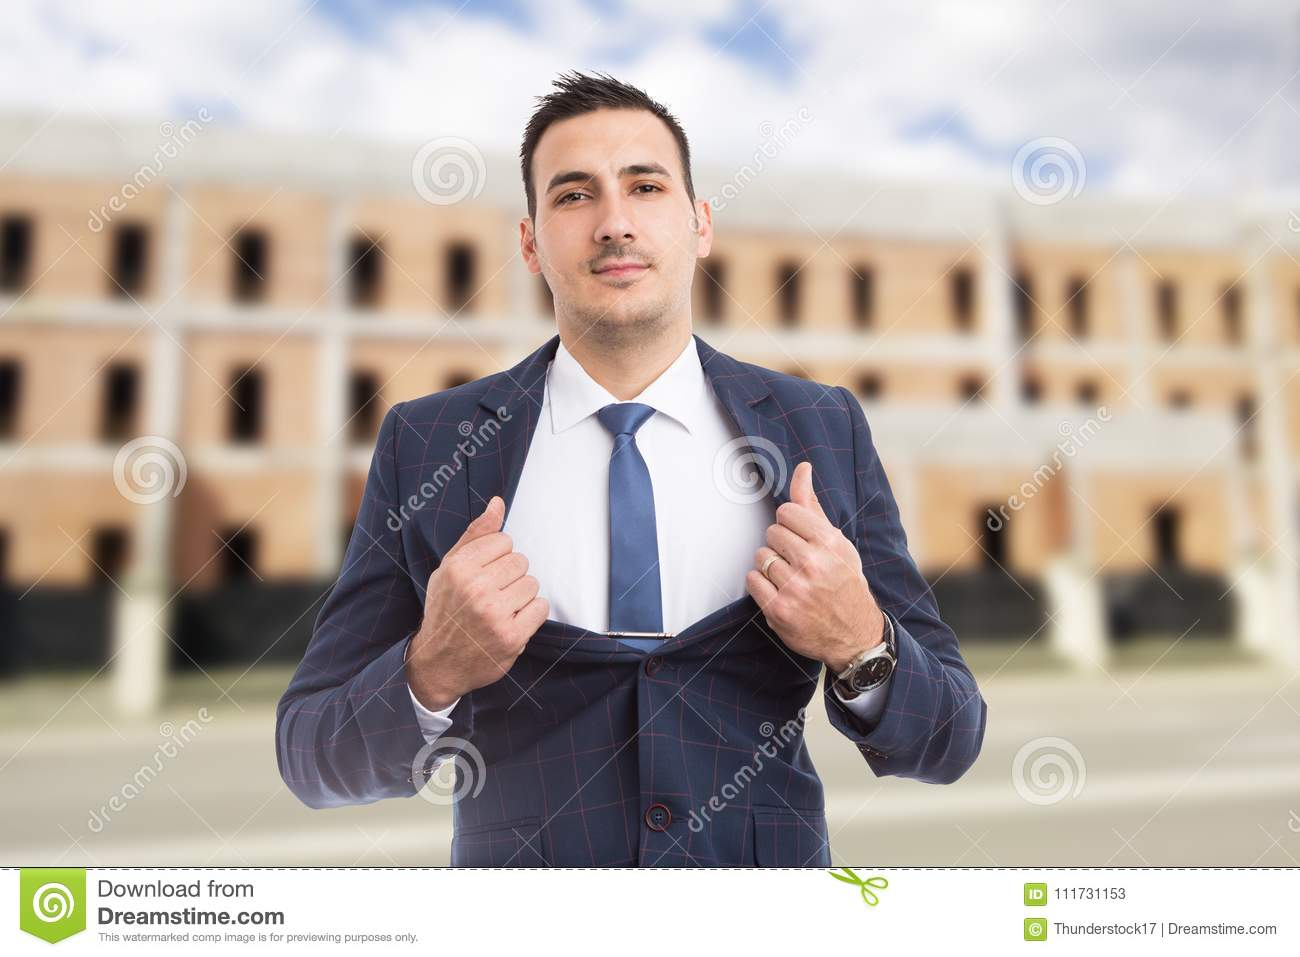 Real estate agent manager showing chest as power and success con